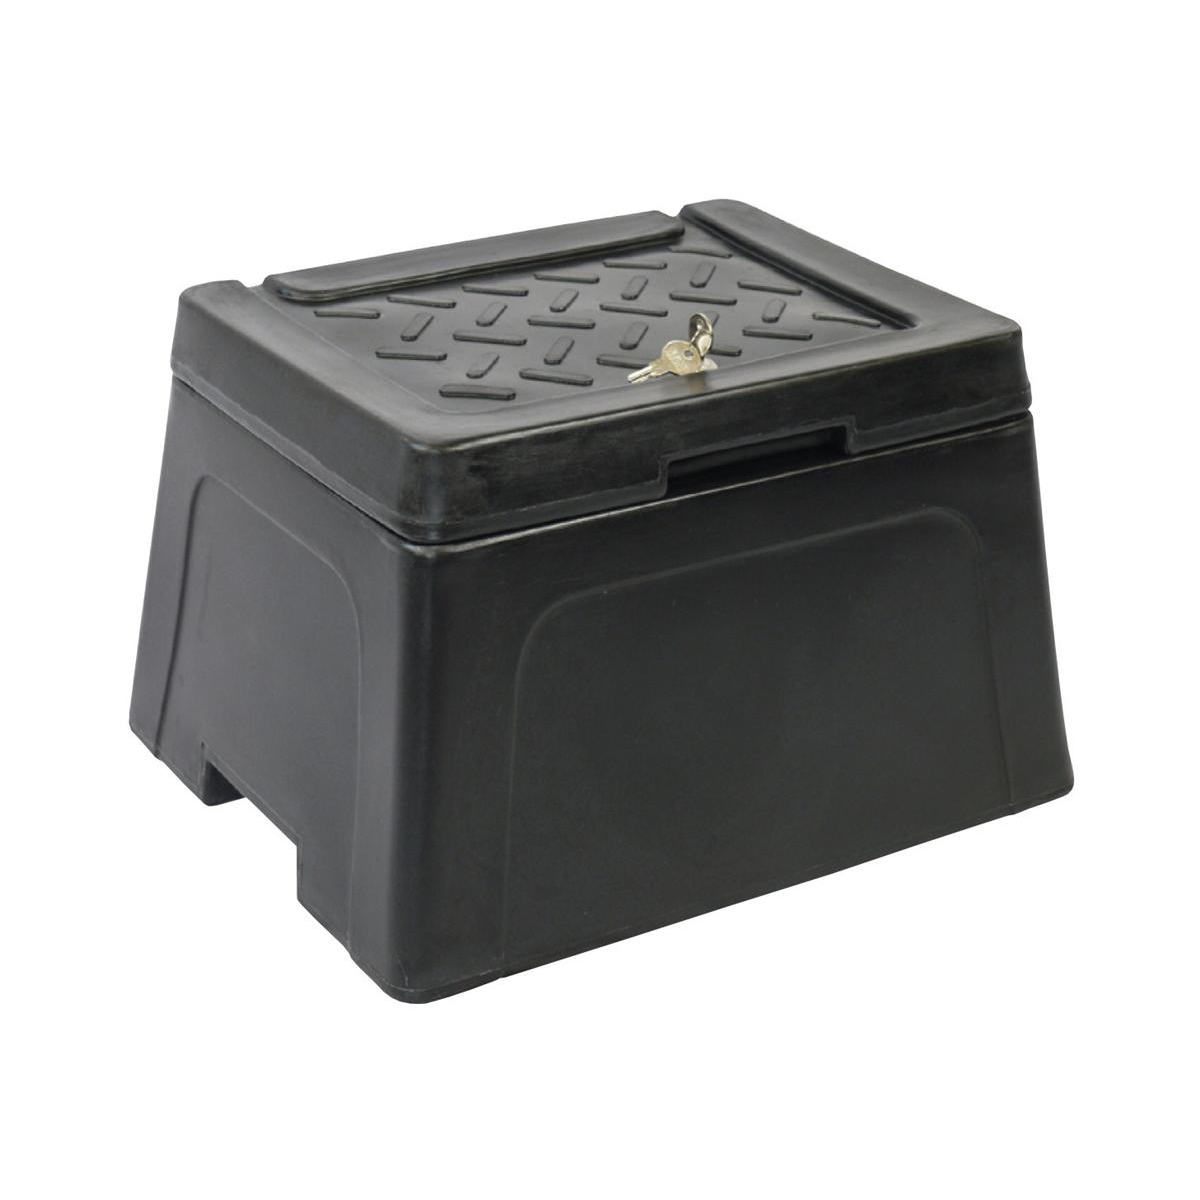 De-Icing Supplies Mini Grit Bin Lockable with Scoop